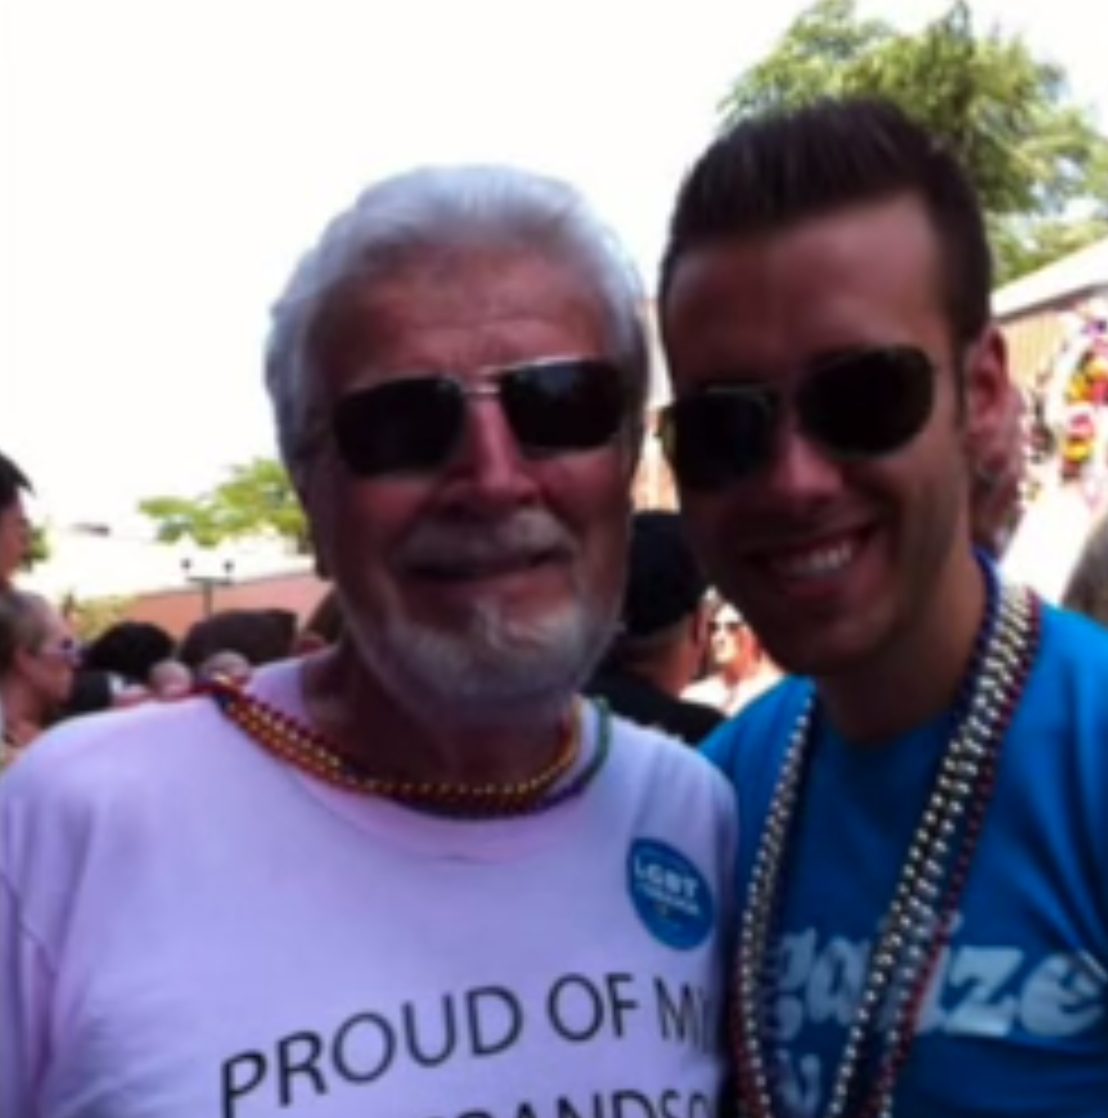 This grandfather got a tattoo as a show of support for his gay grandson.